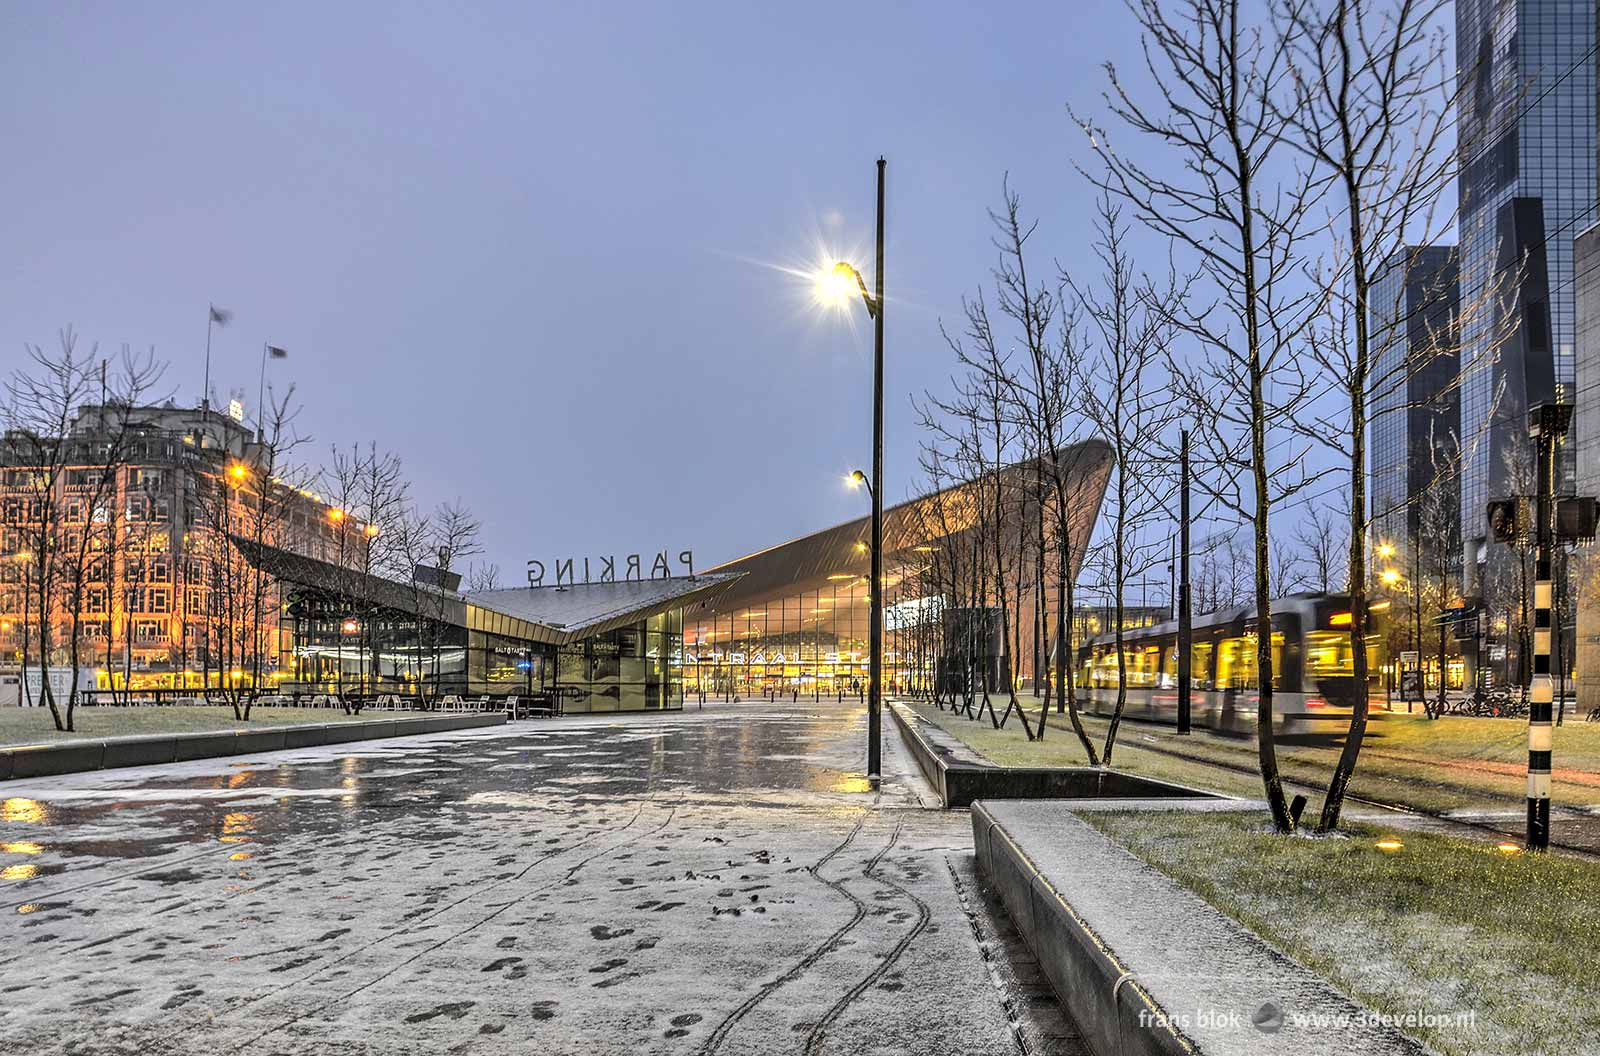 Winter image of the Rotterdam central railway station in the early morning, with snow and glaze on the pavement and a passing tram